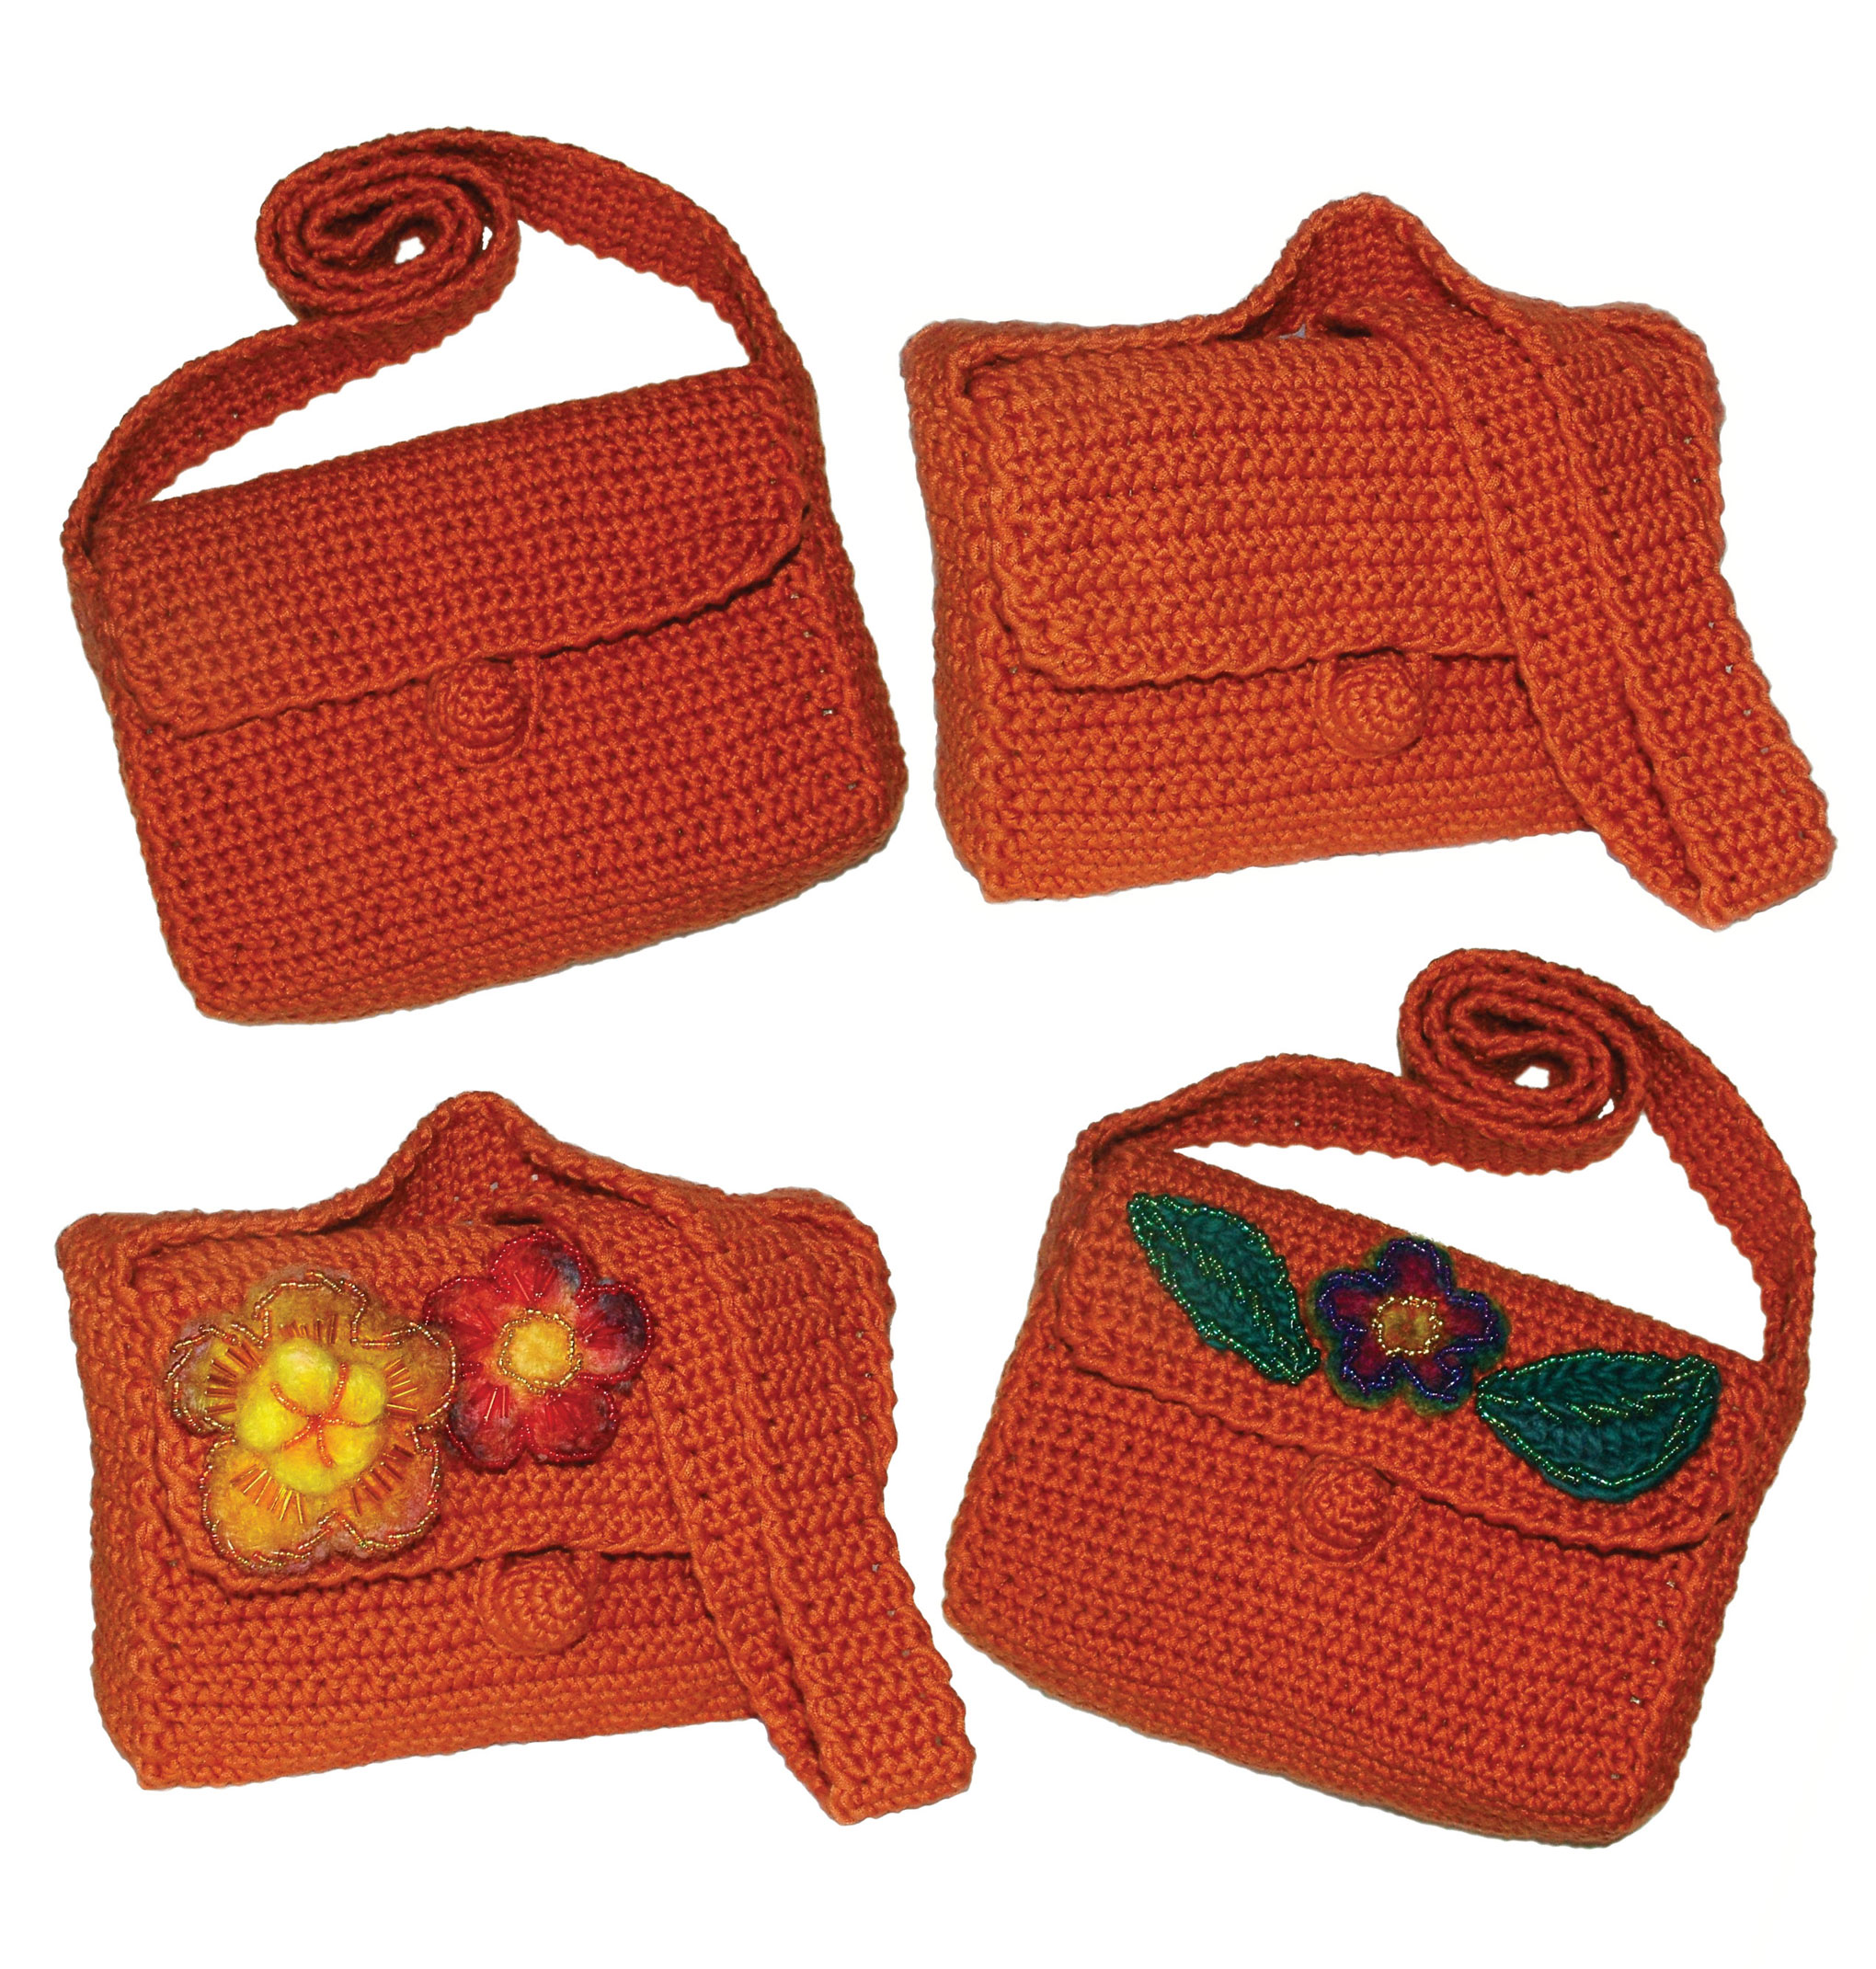 EASY CROCHET PURSE PATTERNS - Crochet and Knitting Patterns